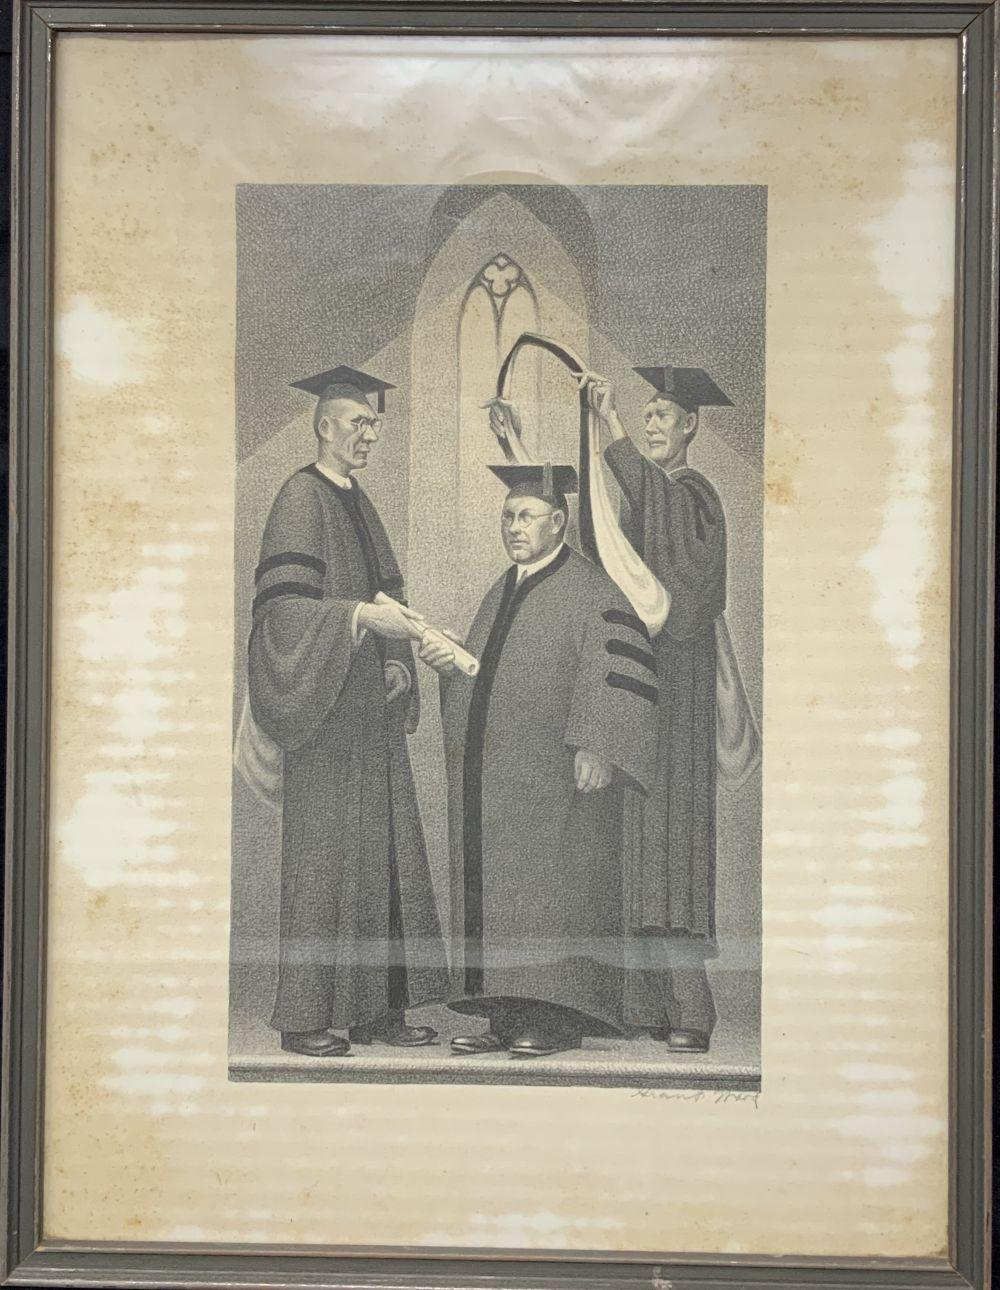 Grant Wood 1892-1942 Signed Lithograph on Paper